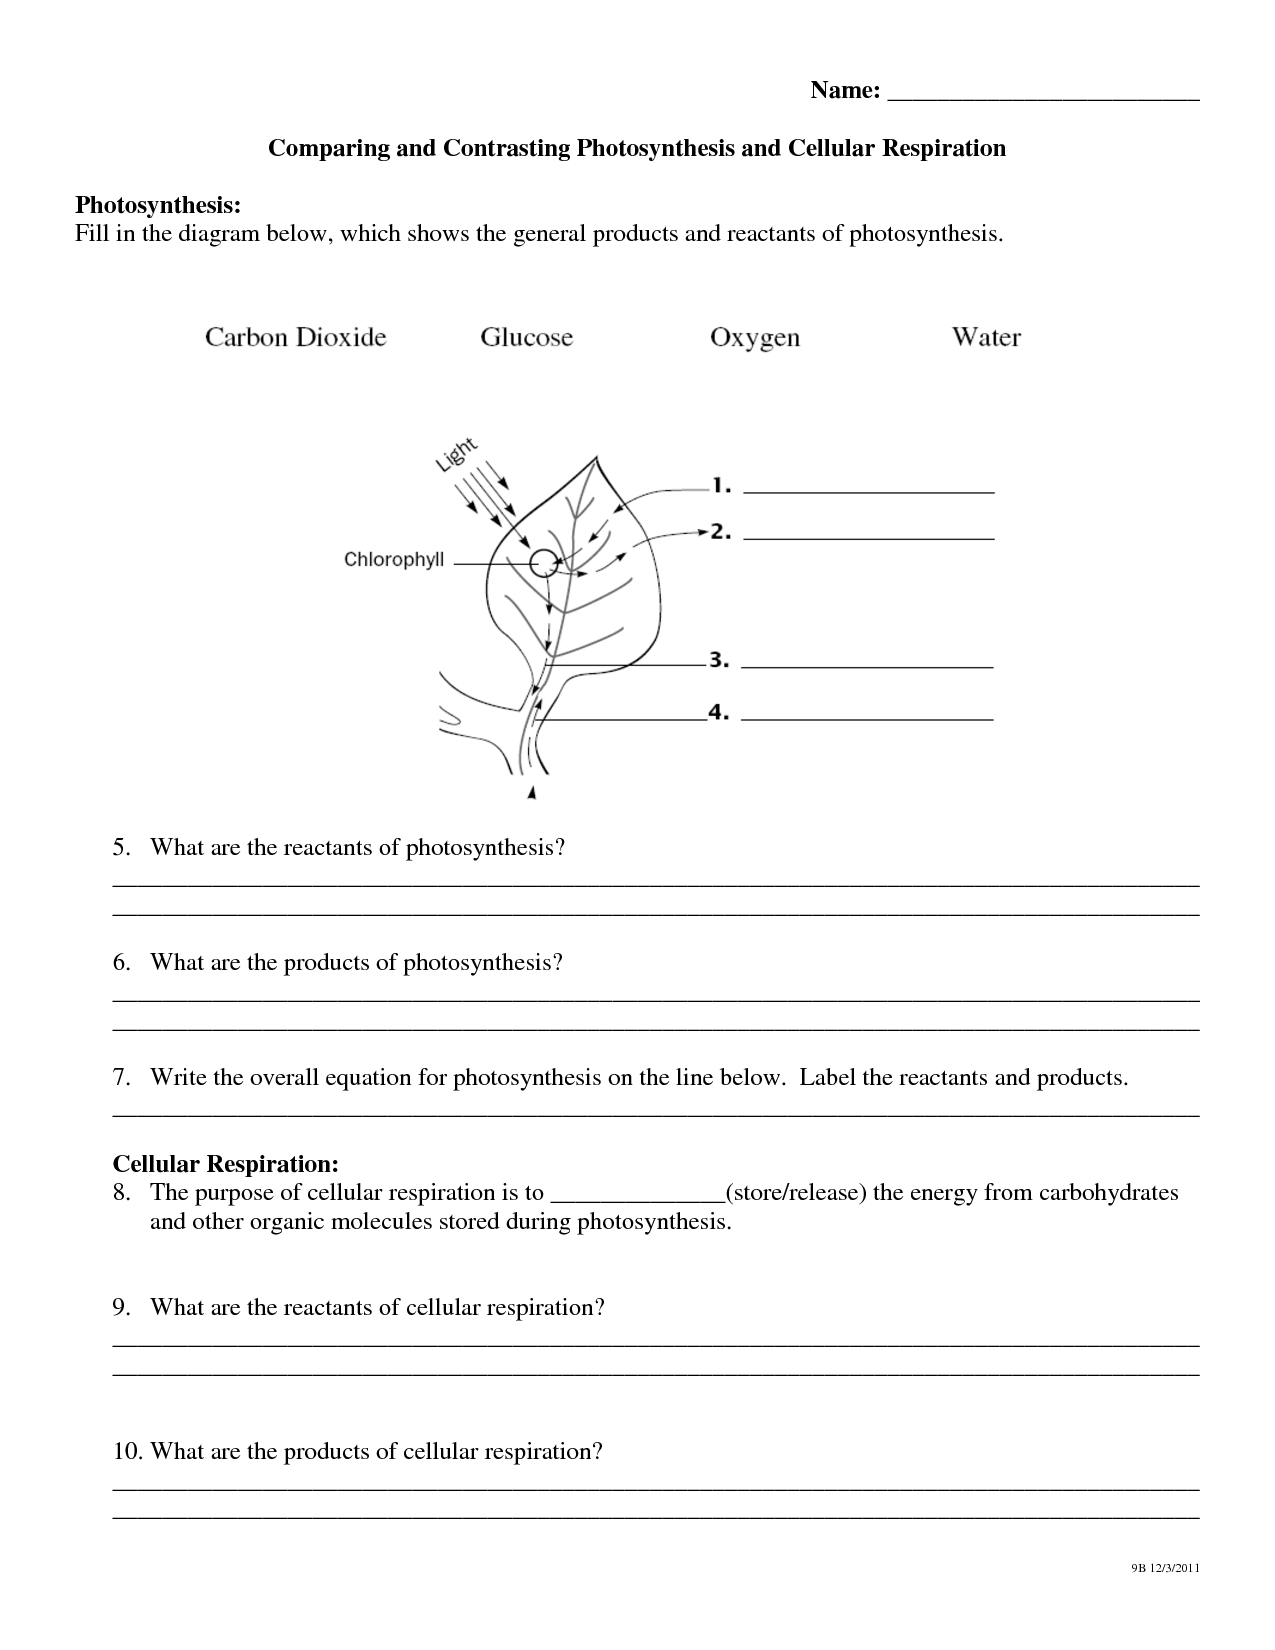 11 Best Images Of Photosynthesis Review Worksheet With Answers